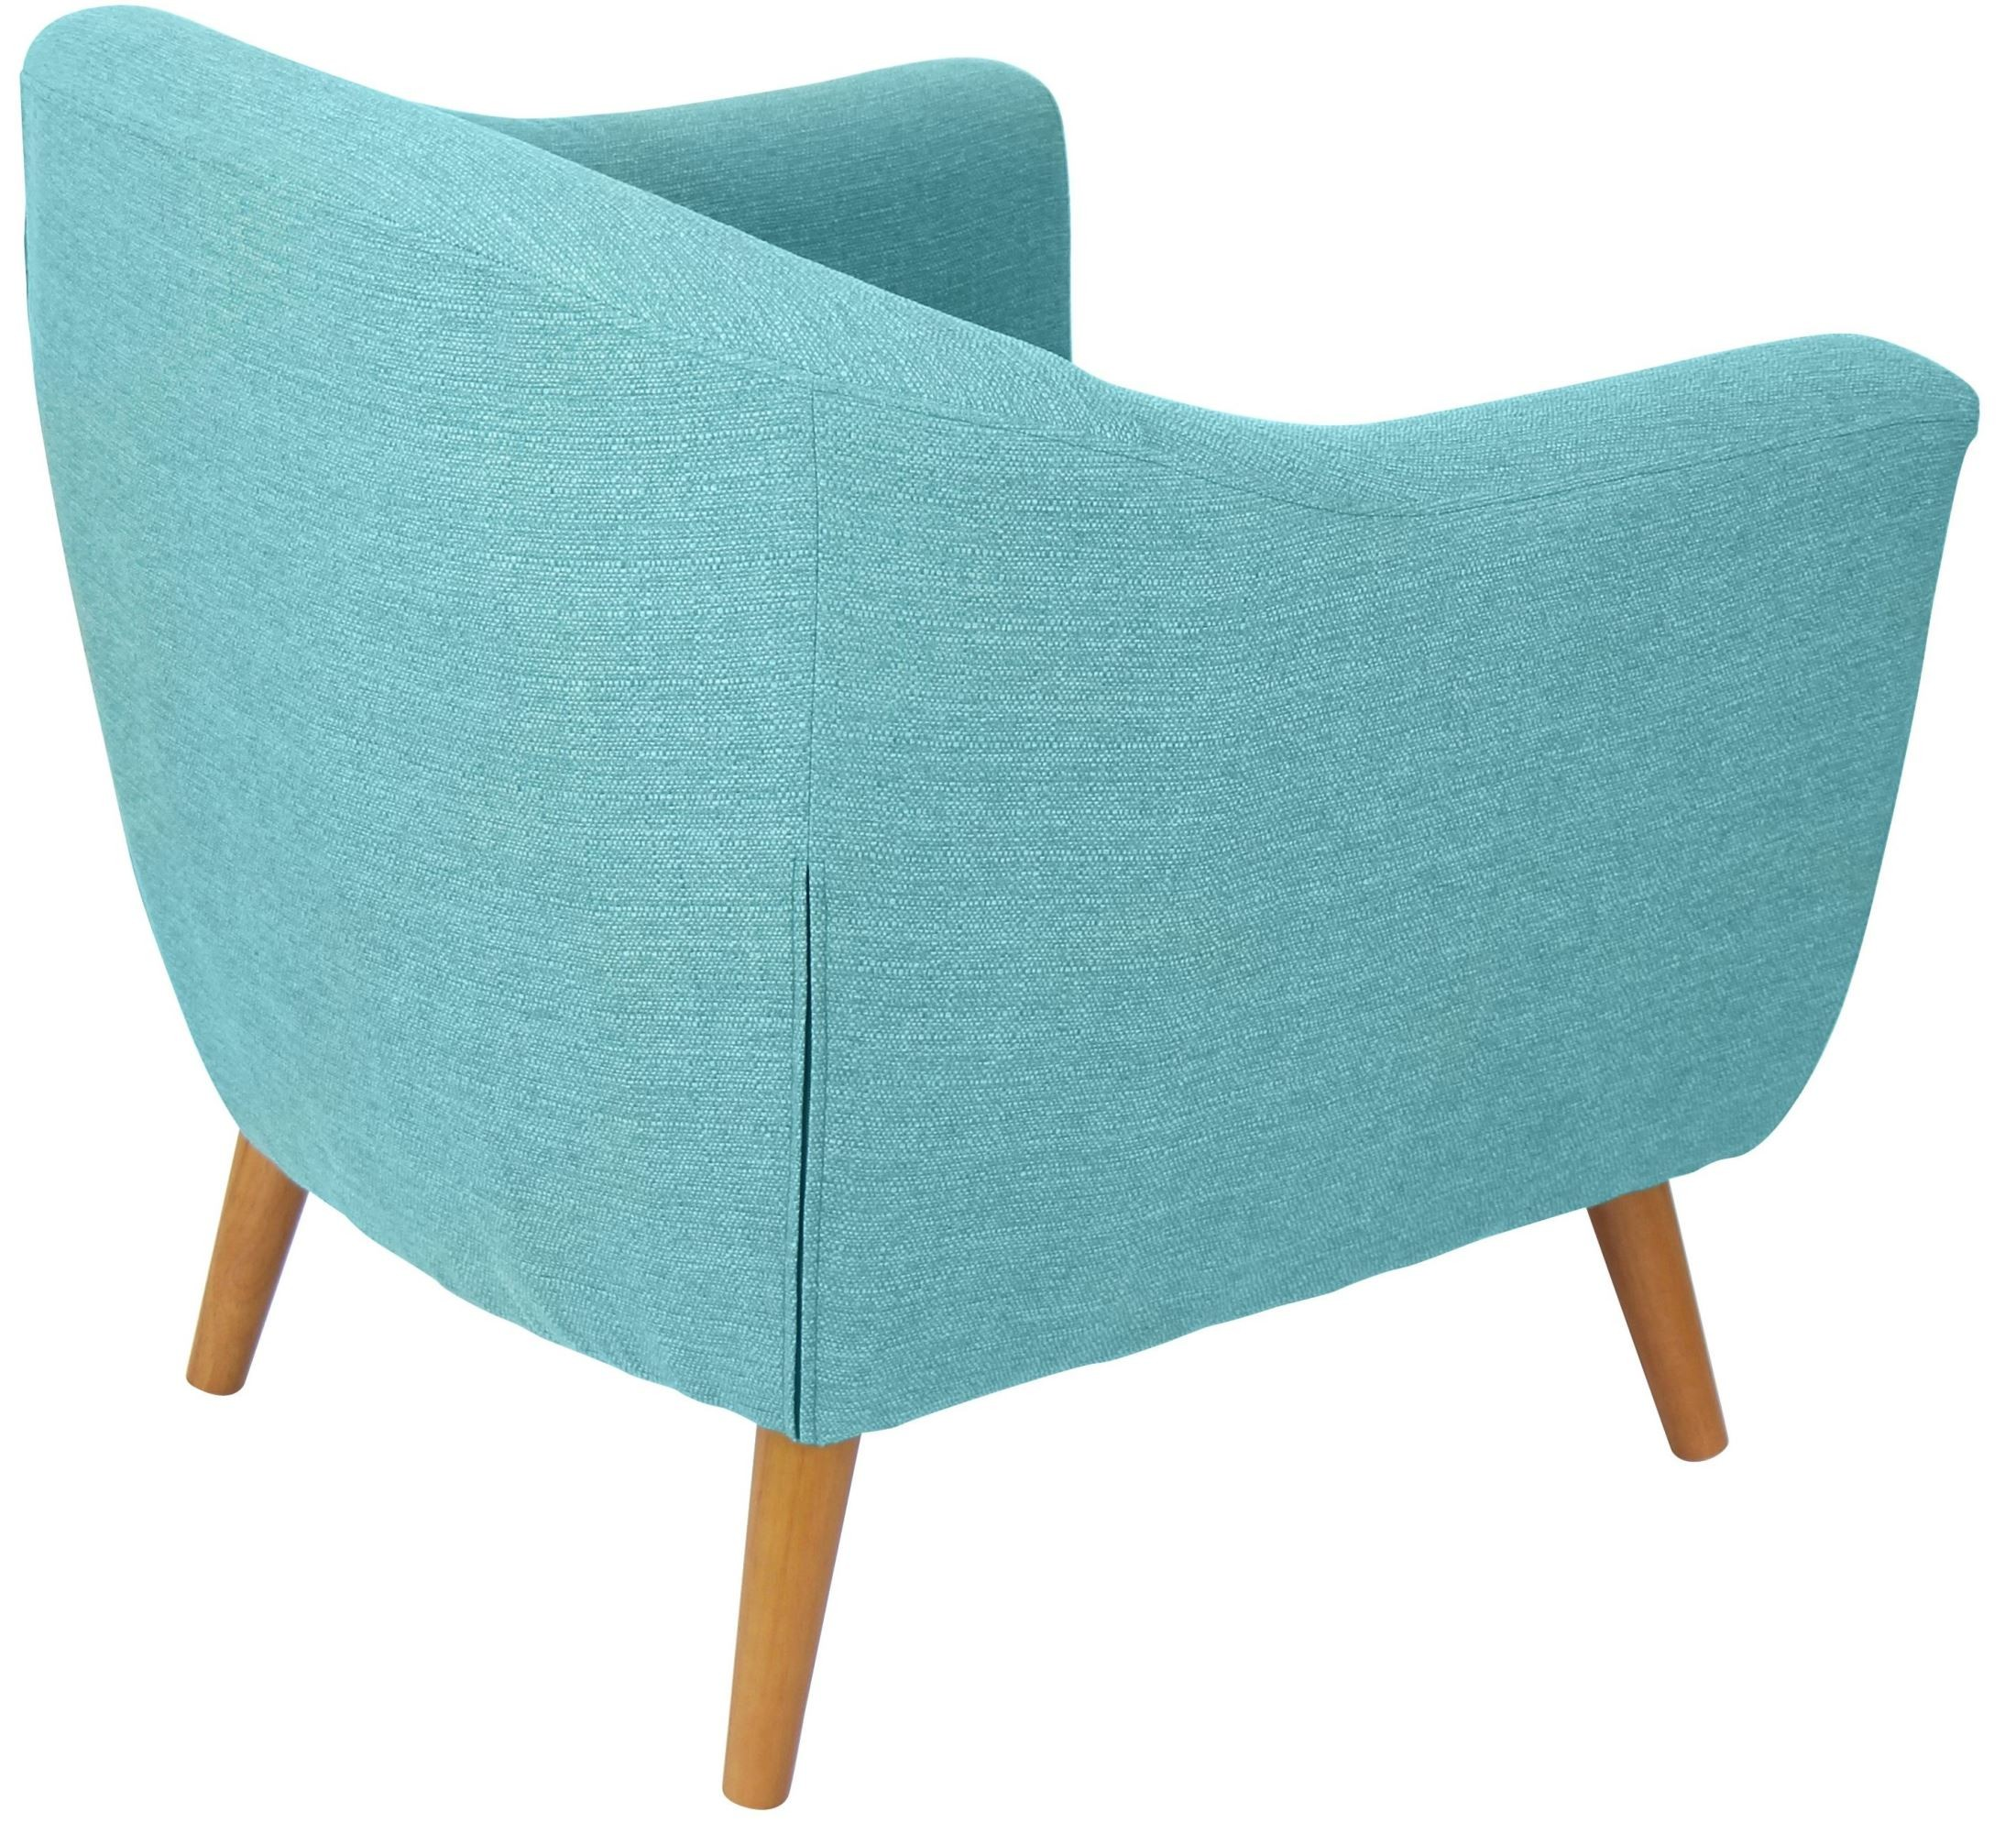 Rockwell Teal Chair From Lumisource Chr Ah Rkwl Tl